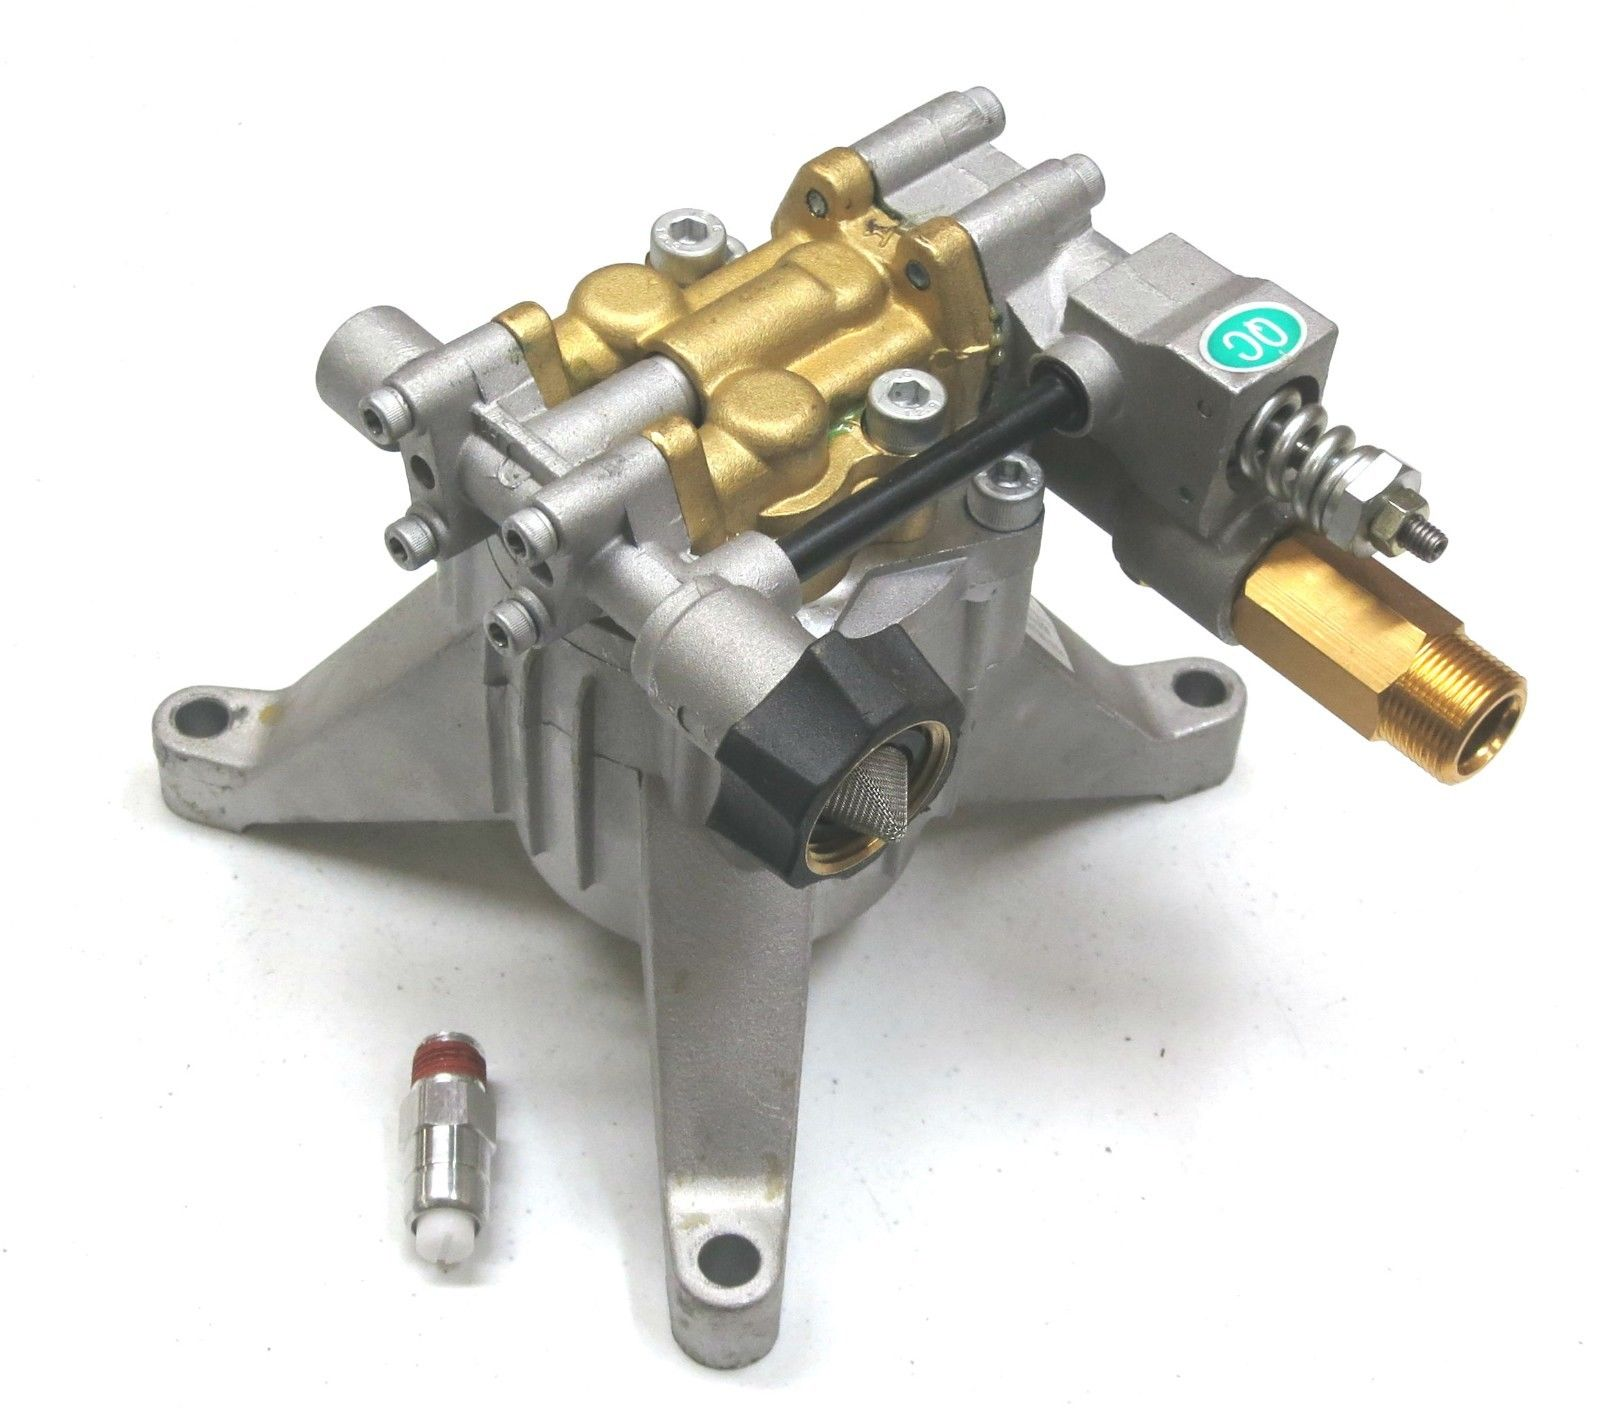 3100 PSI Upgraded POWER PRESSURE WASHER WATER PUMP Sears Craftsman 580.752220 by The ROP Shop